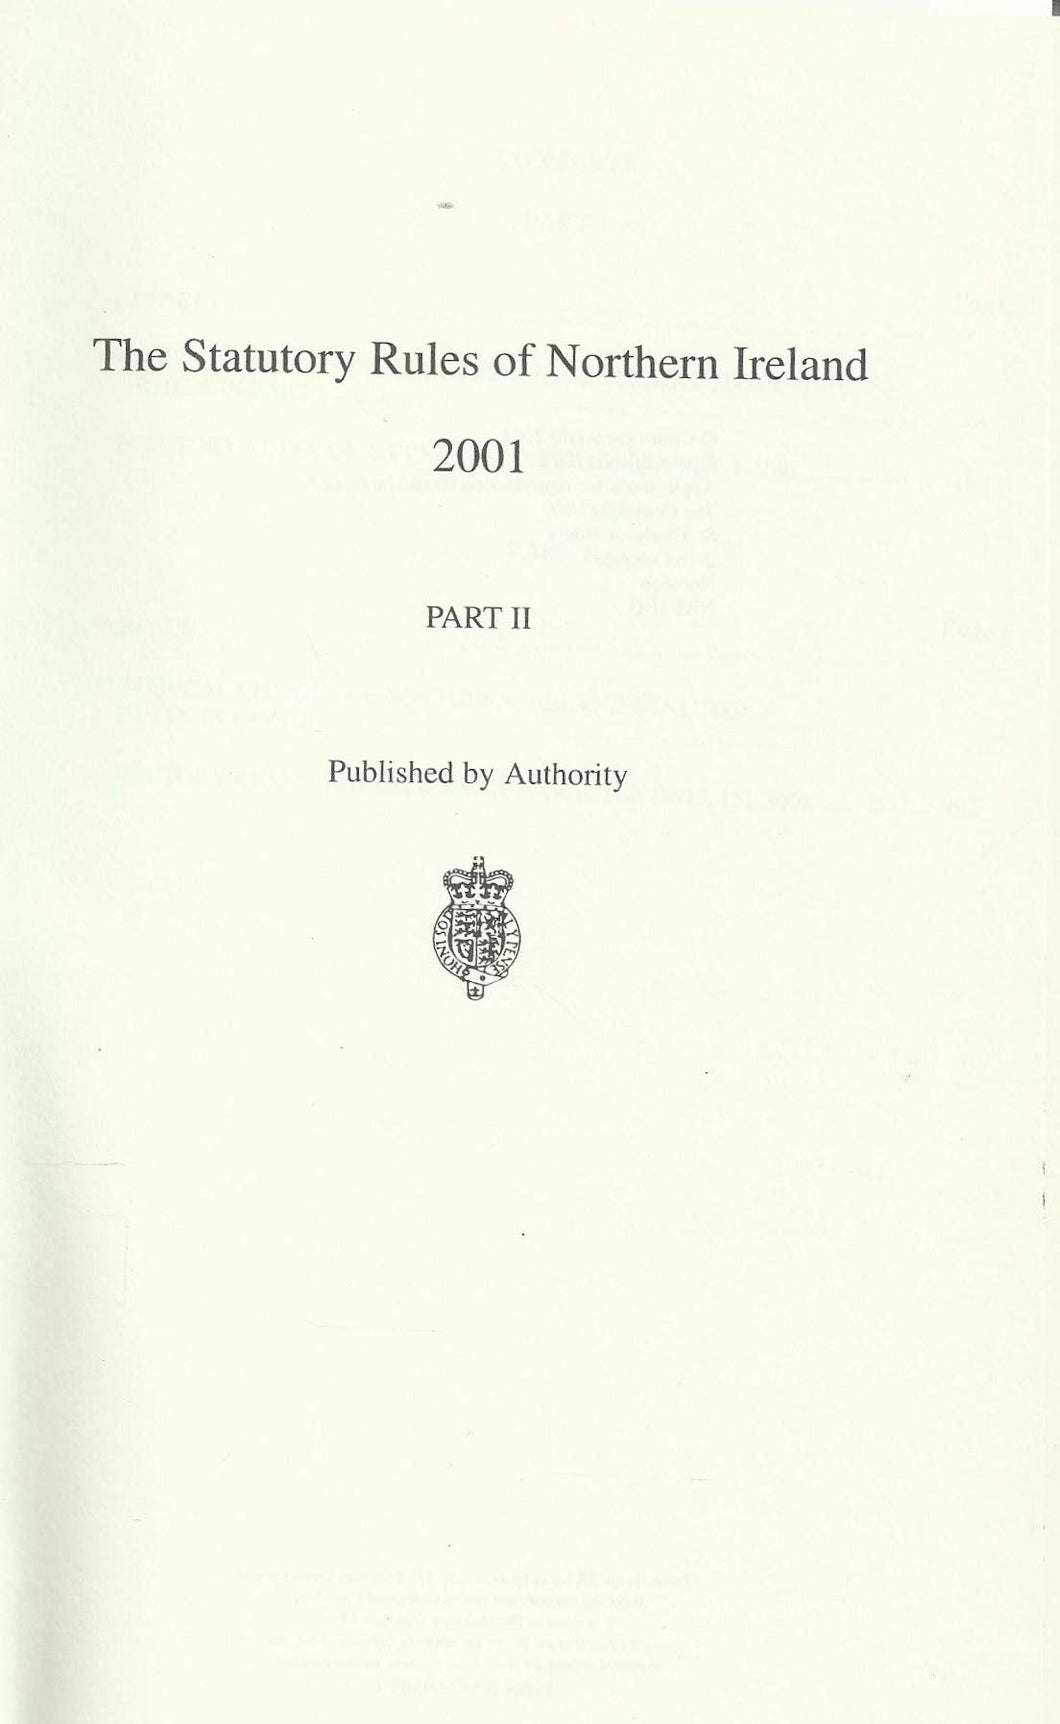 Northern Ireland Statutory Rules and Orders 2001, Part II - The Statutory Rules and Orders of Northern Ireland